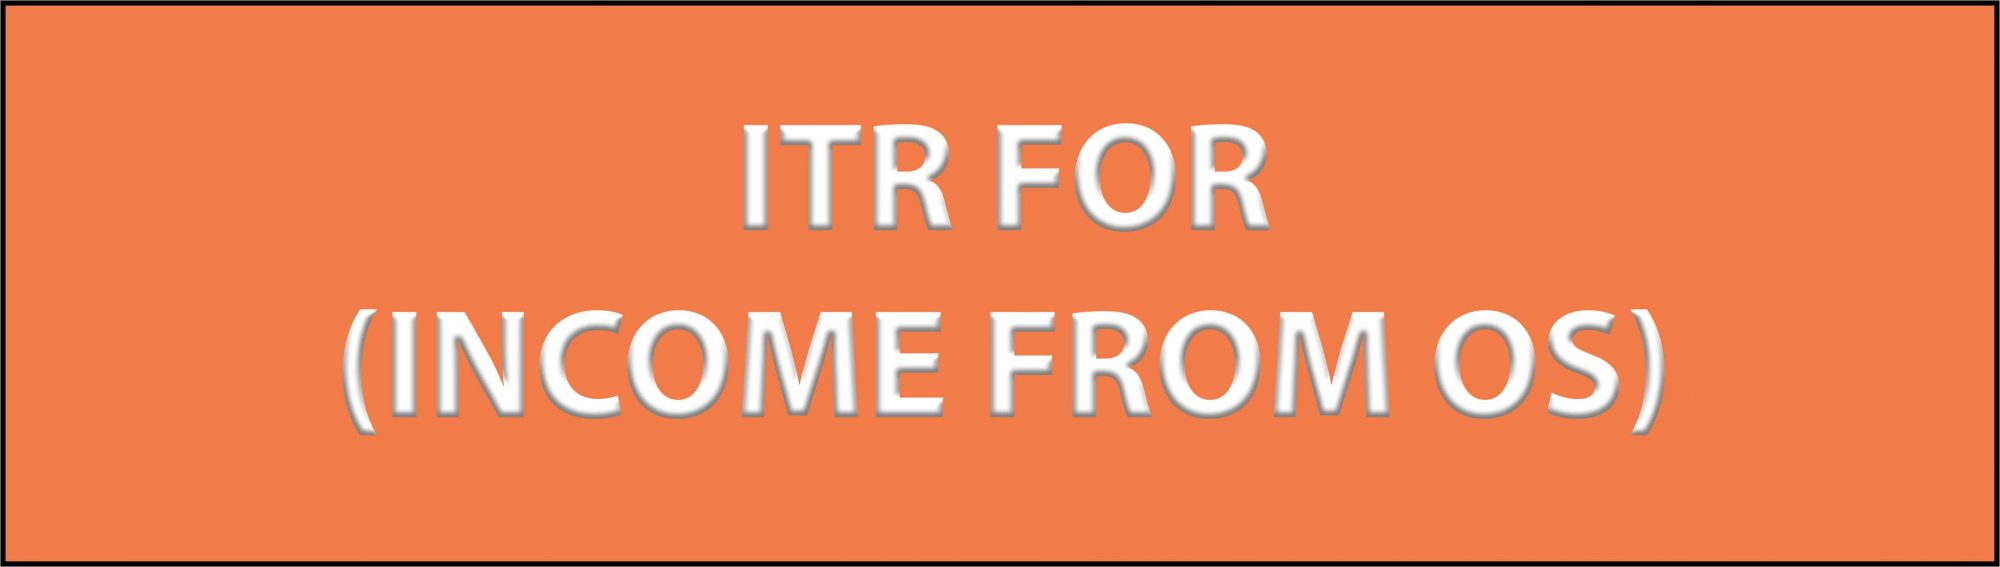 ITR ForINCOME FROM OS scaled